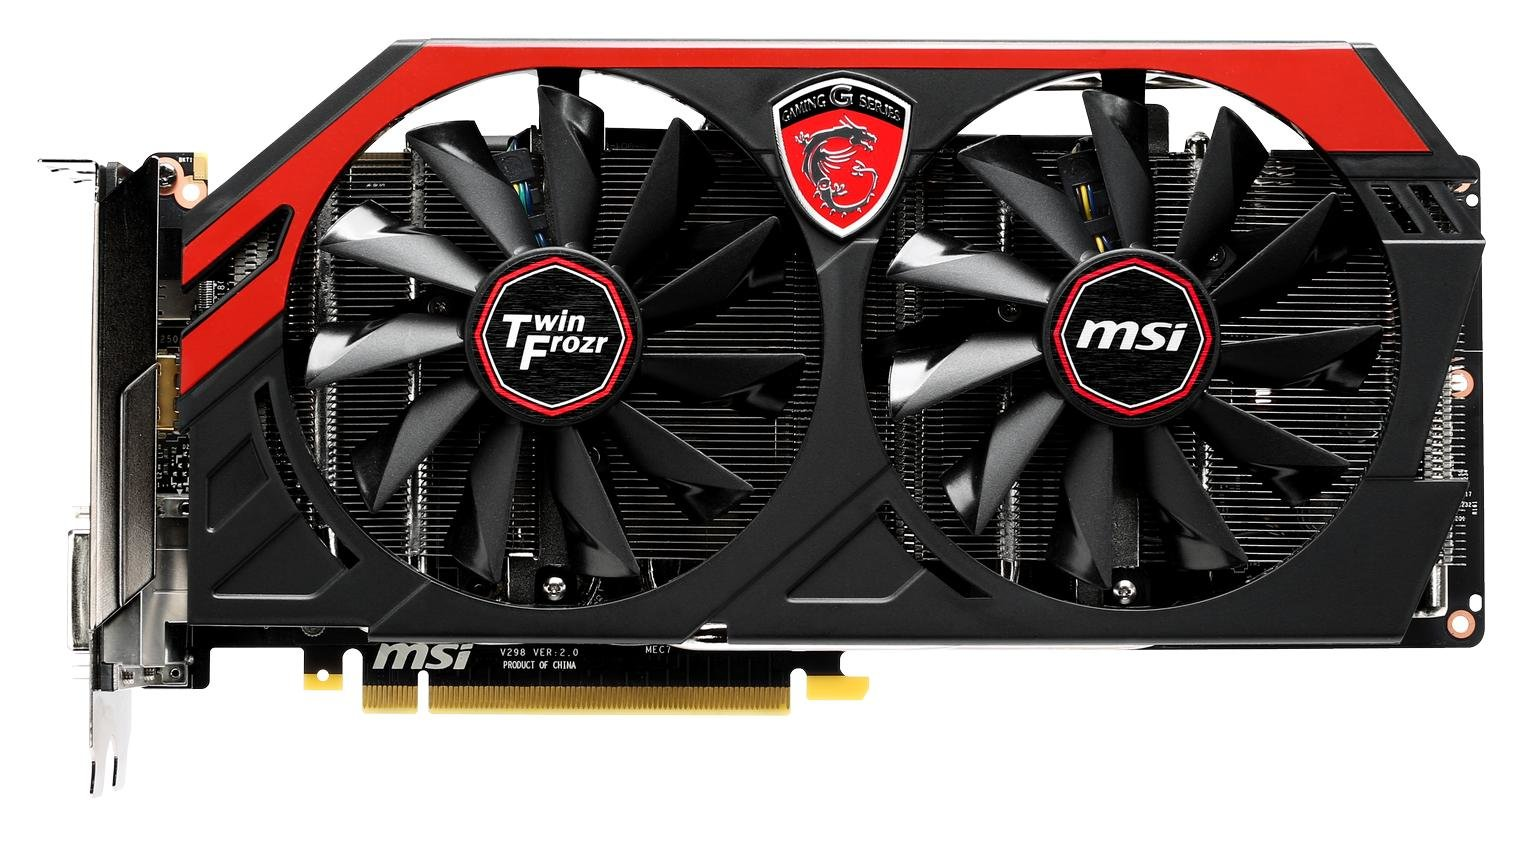 MSI GeForce GTX 780 Ti Gaming